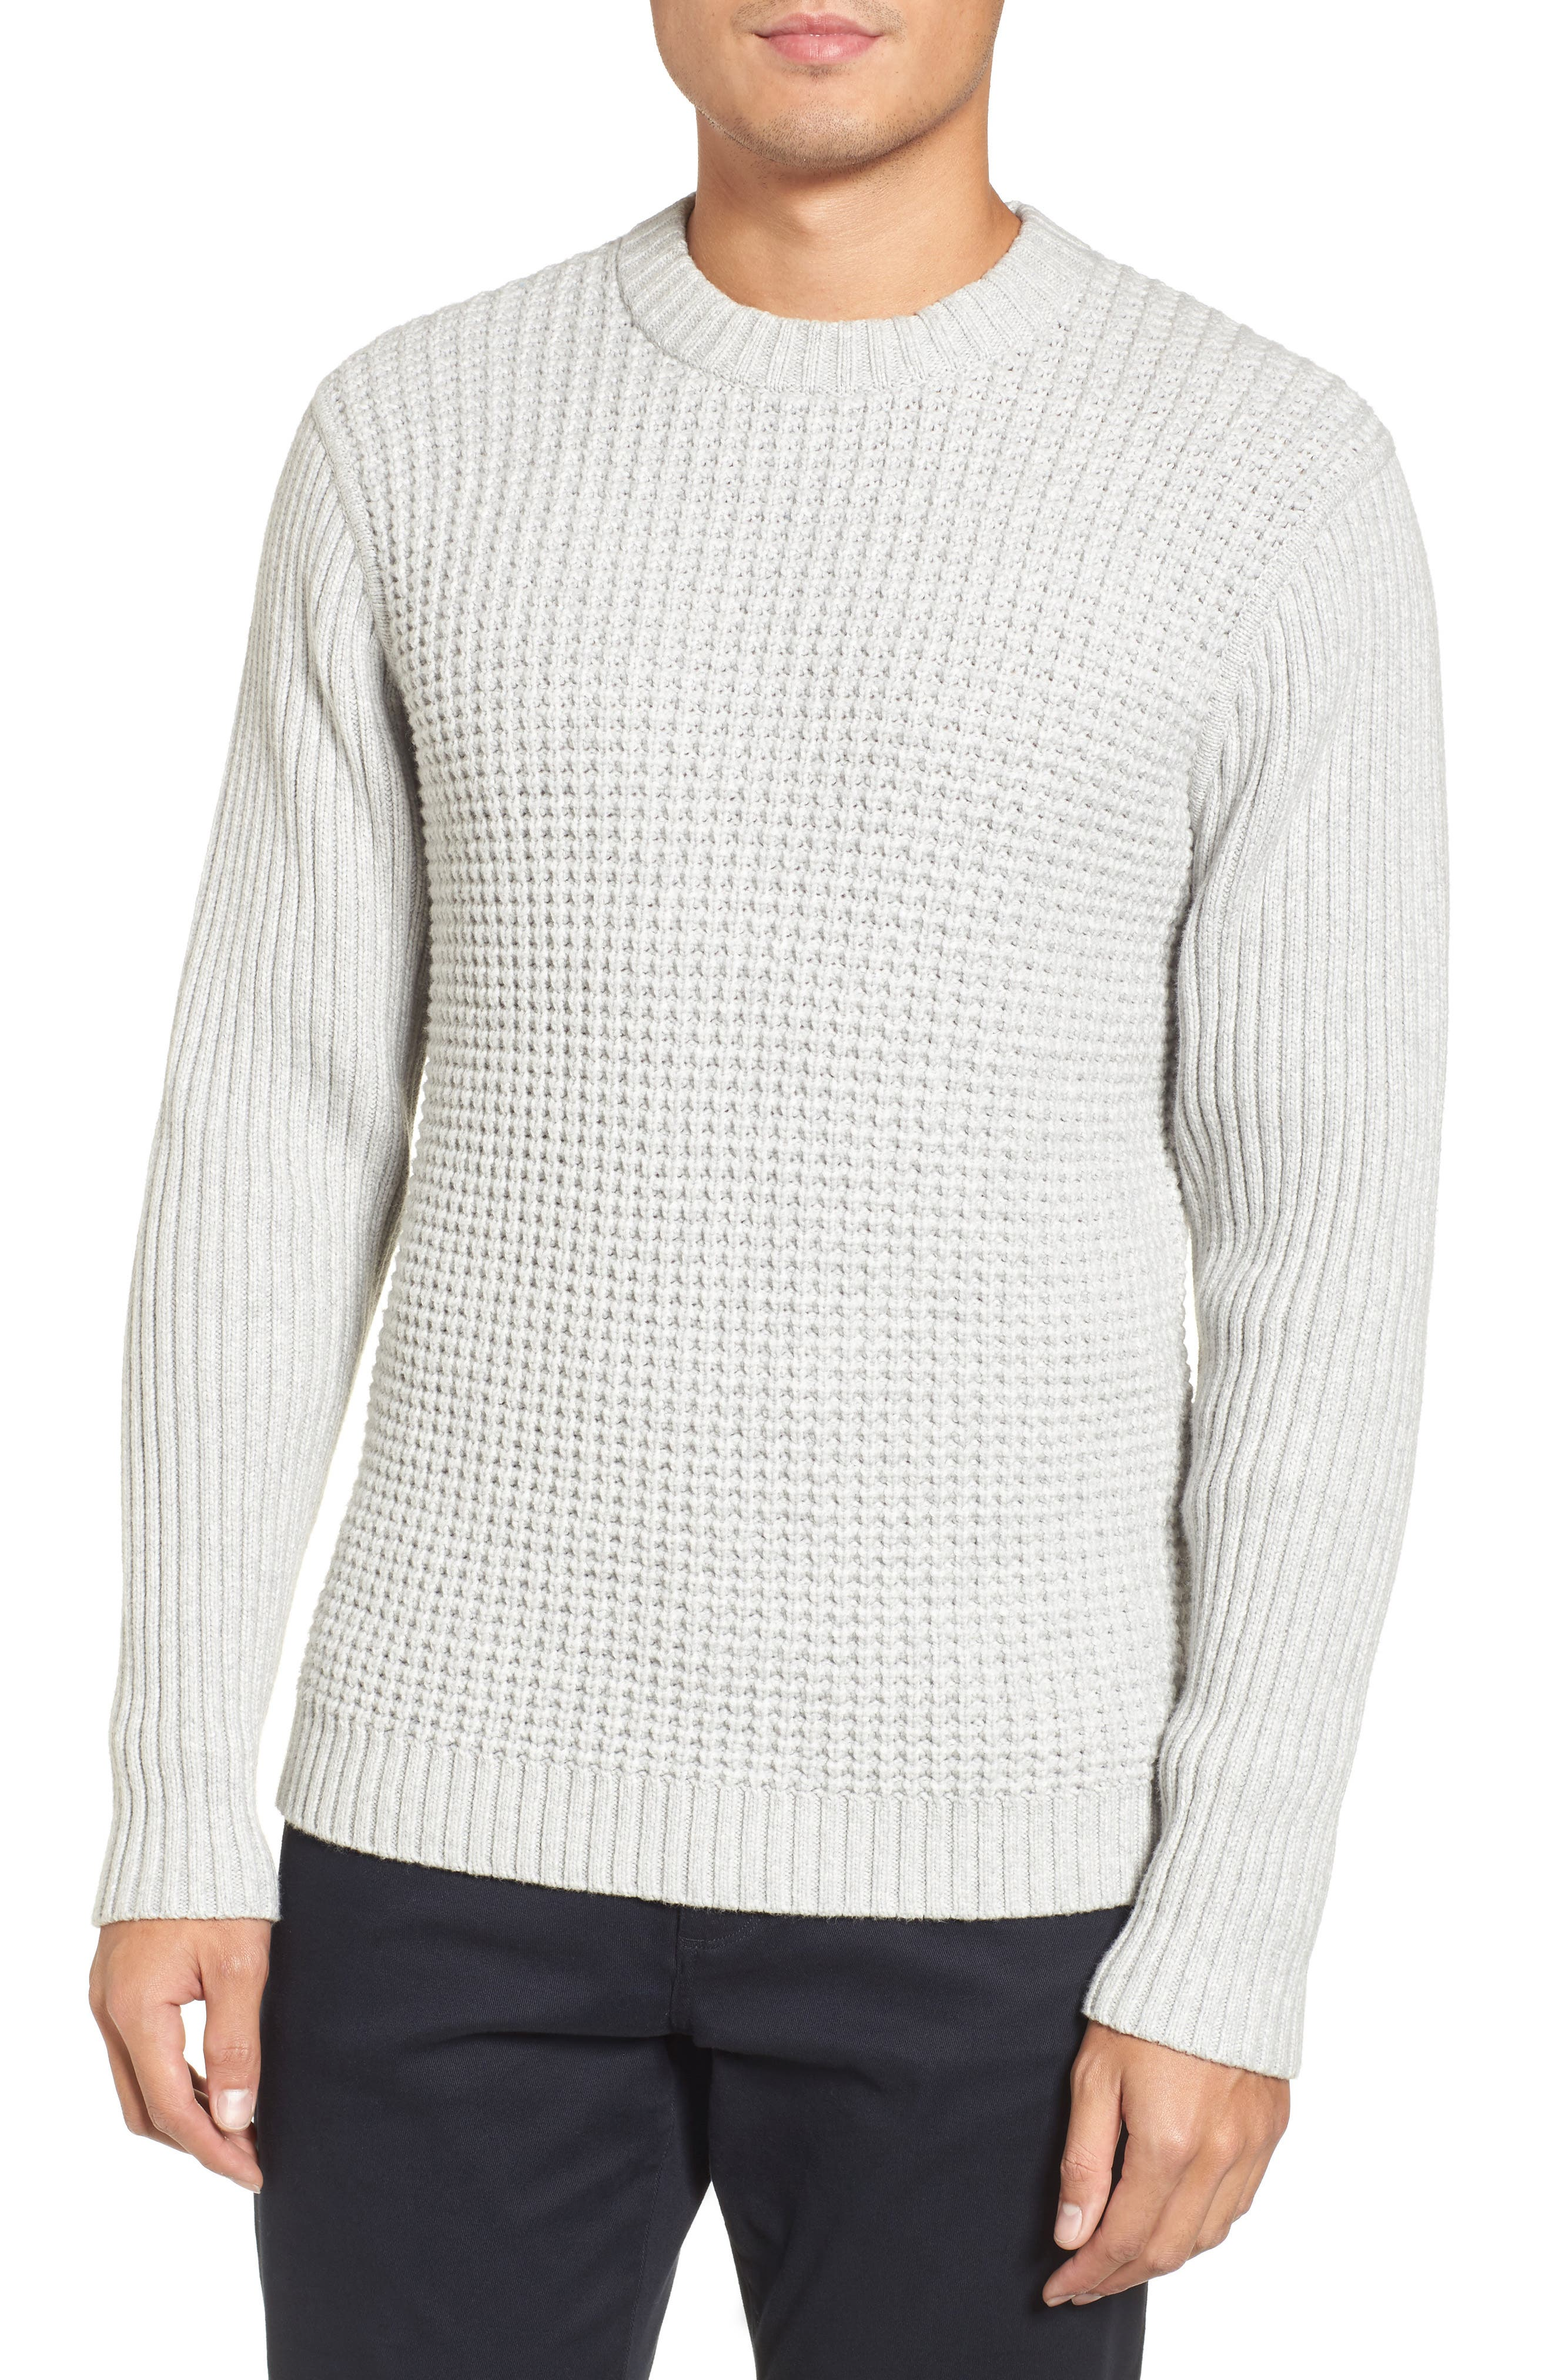 Heavyweight Mixed Knit Crewneck Sweater,                         Main,                         color, 050